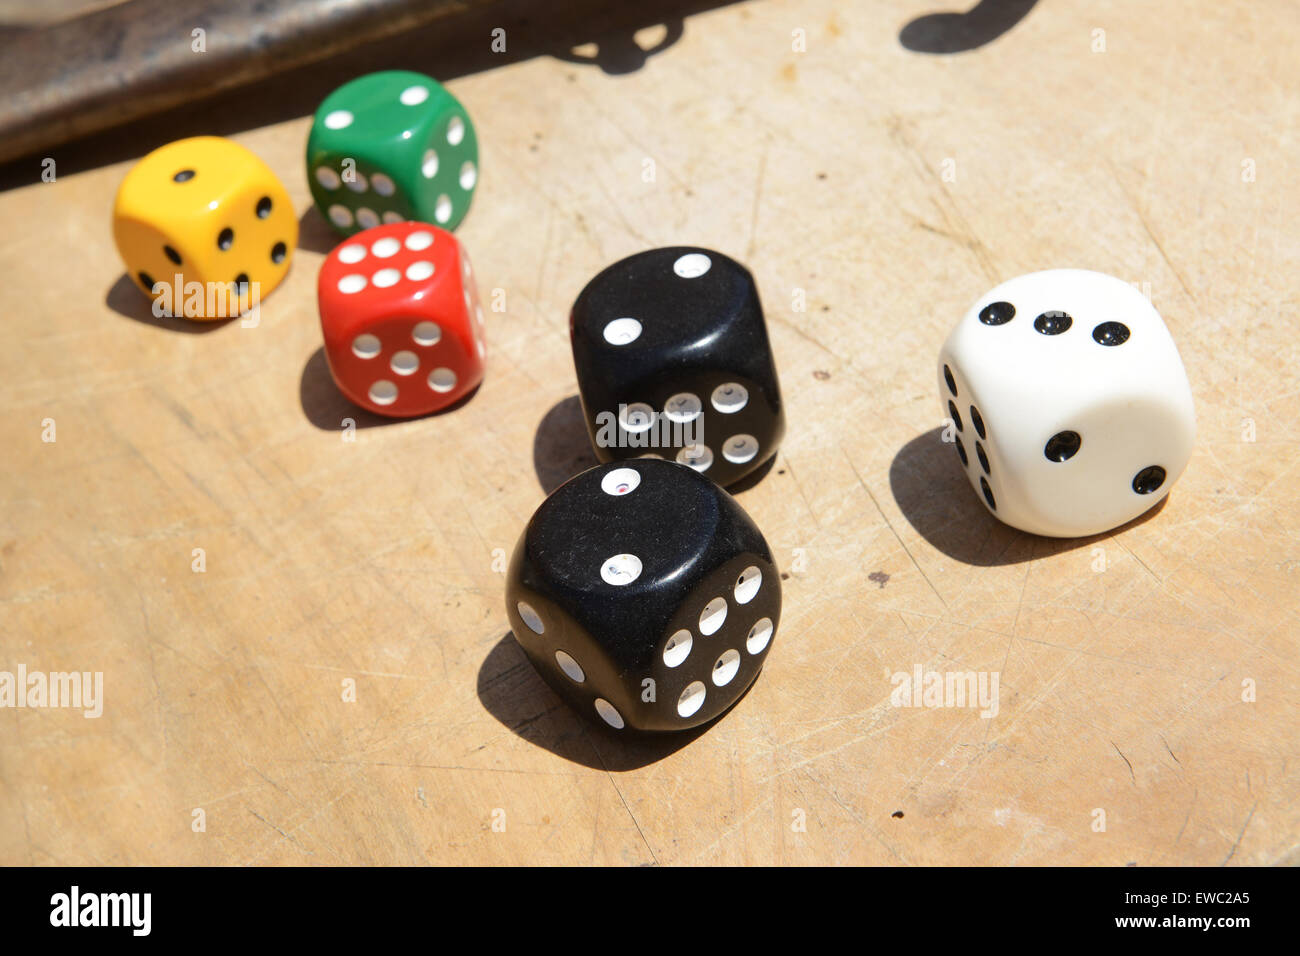 Dice dices coloured colourful color colored throw of the - Stock Image